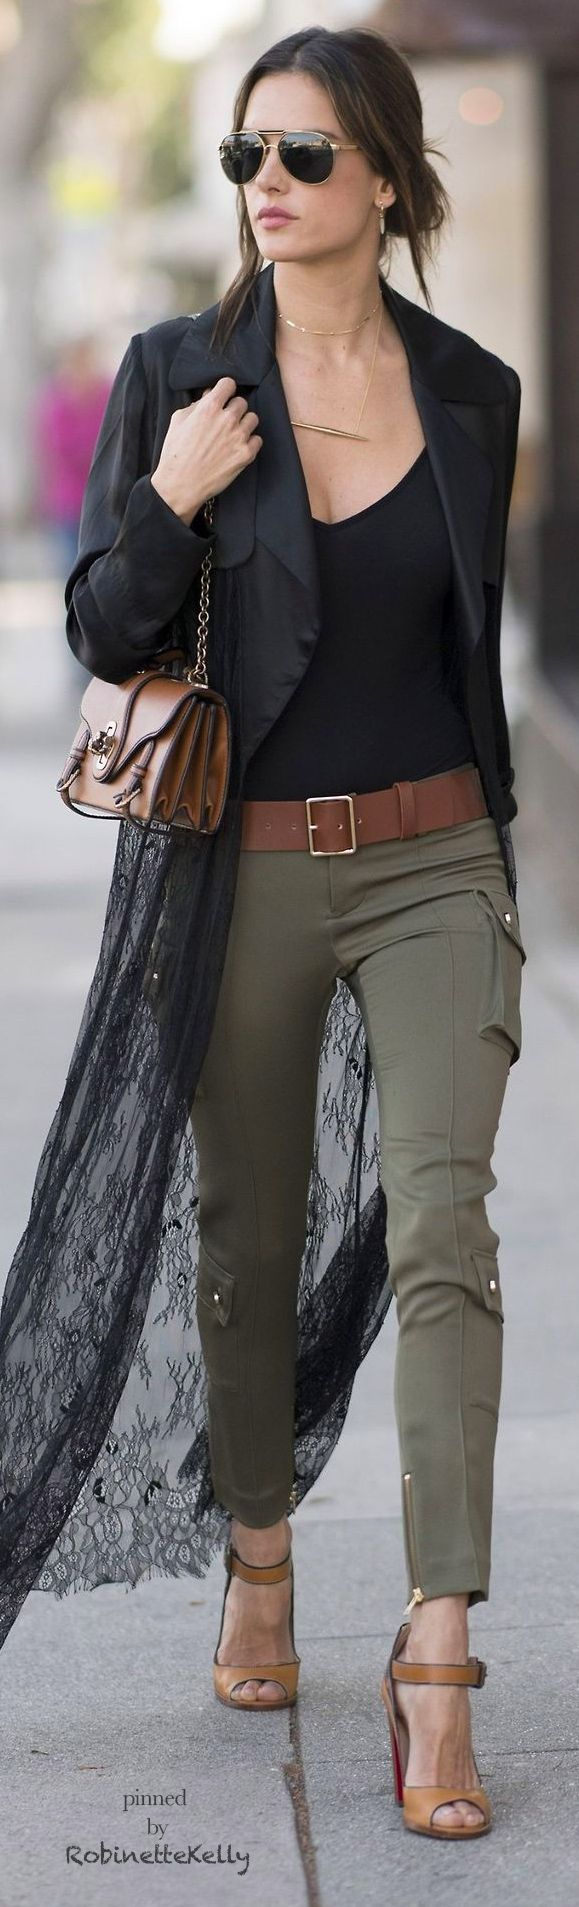 1535 best streetstyle images on pinterest casual wear